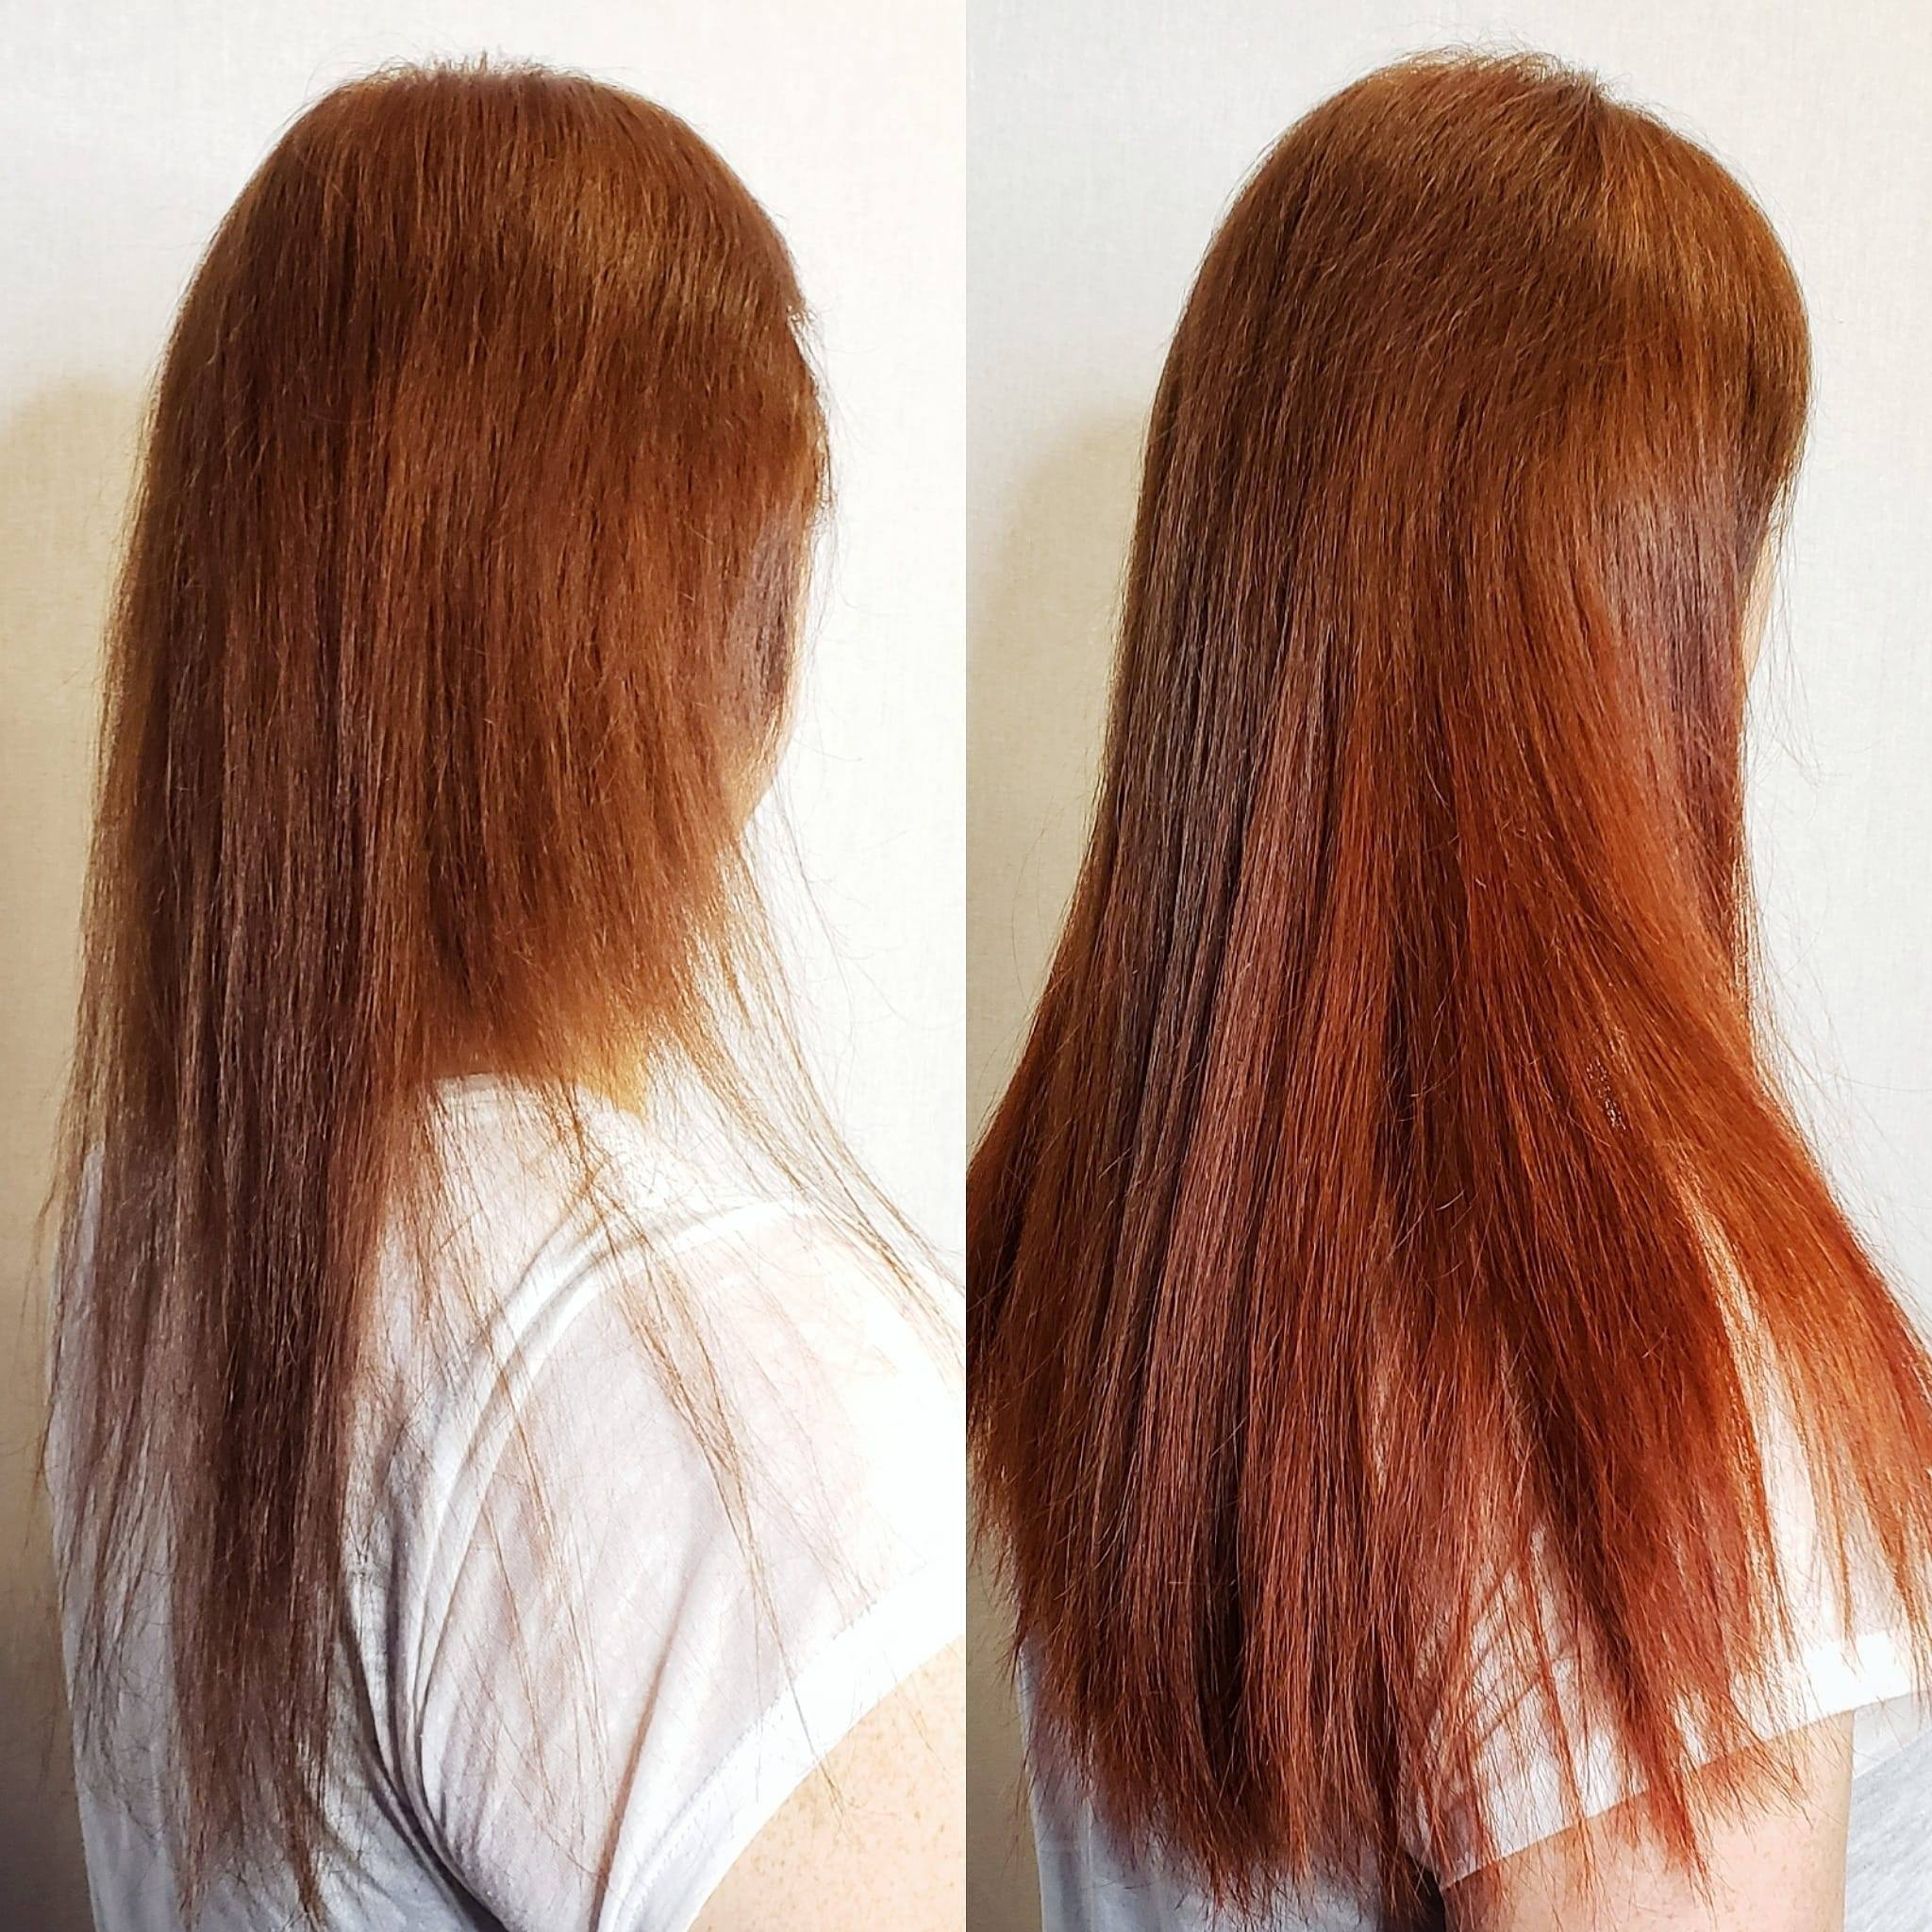 hair extensions on thin hair